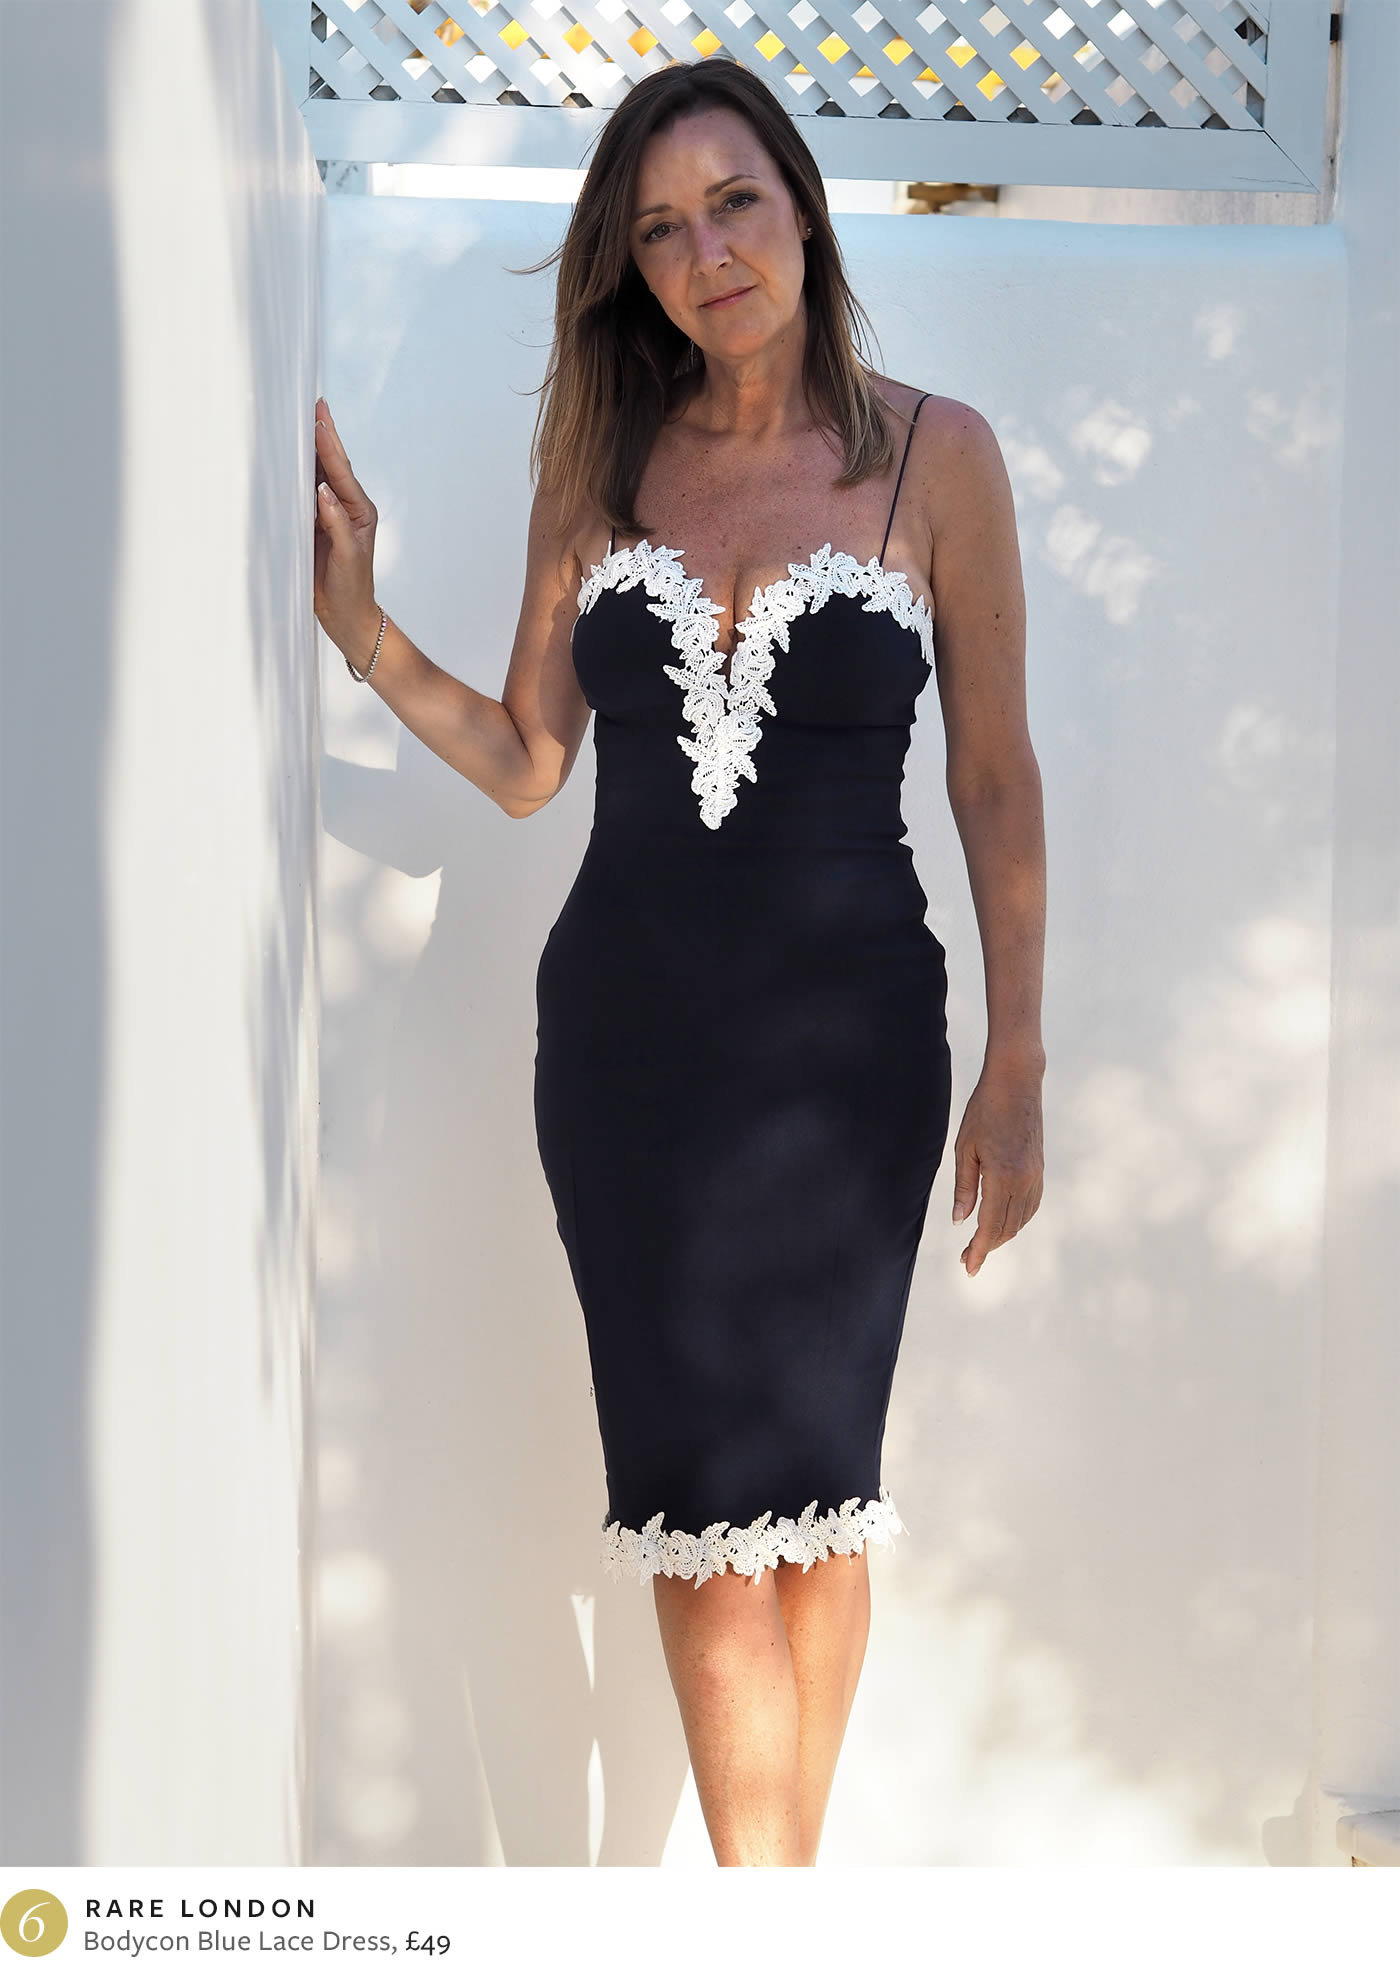 Ten days in Mykonos - Dare London Bodycon dress